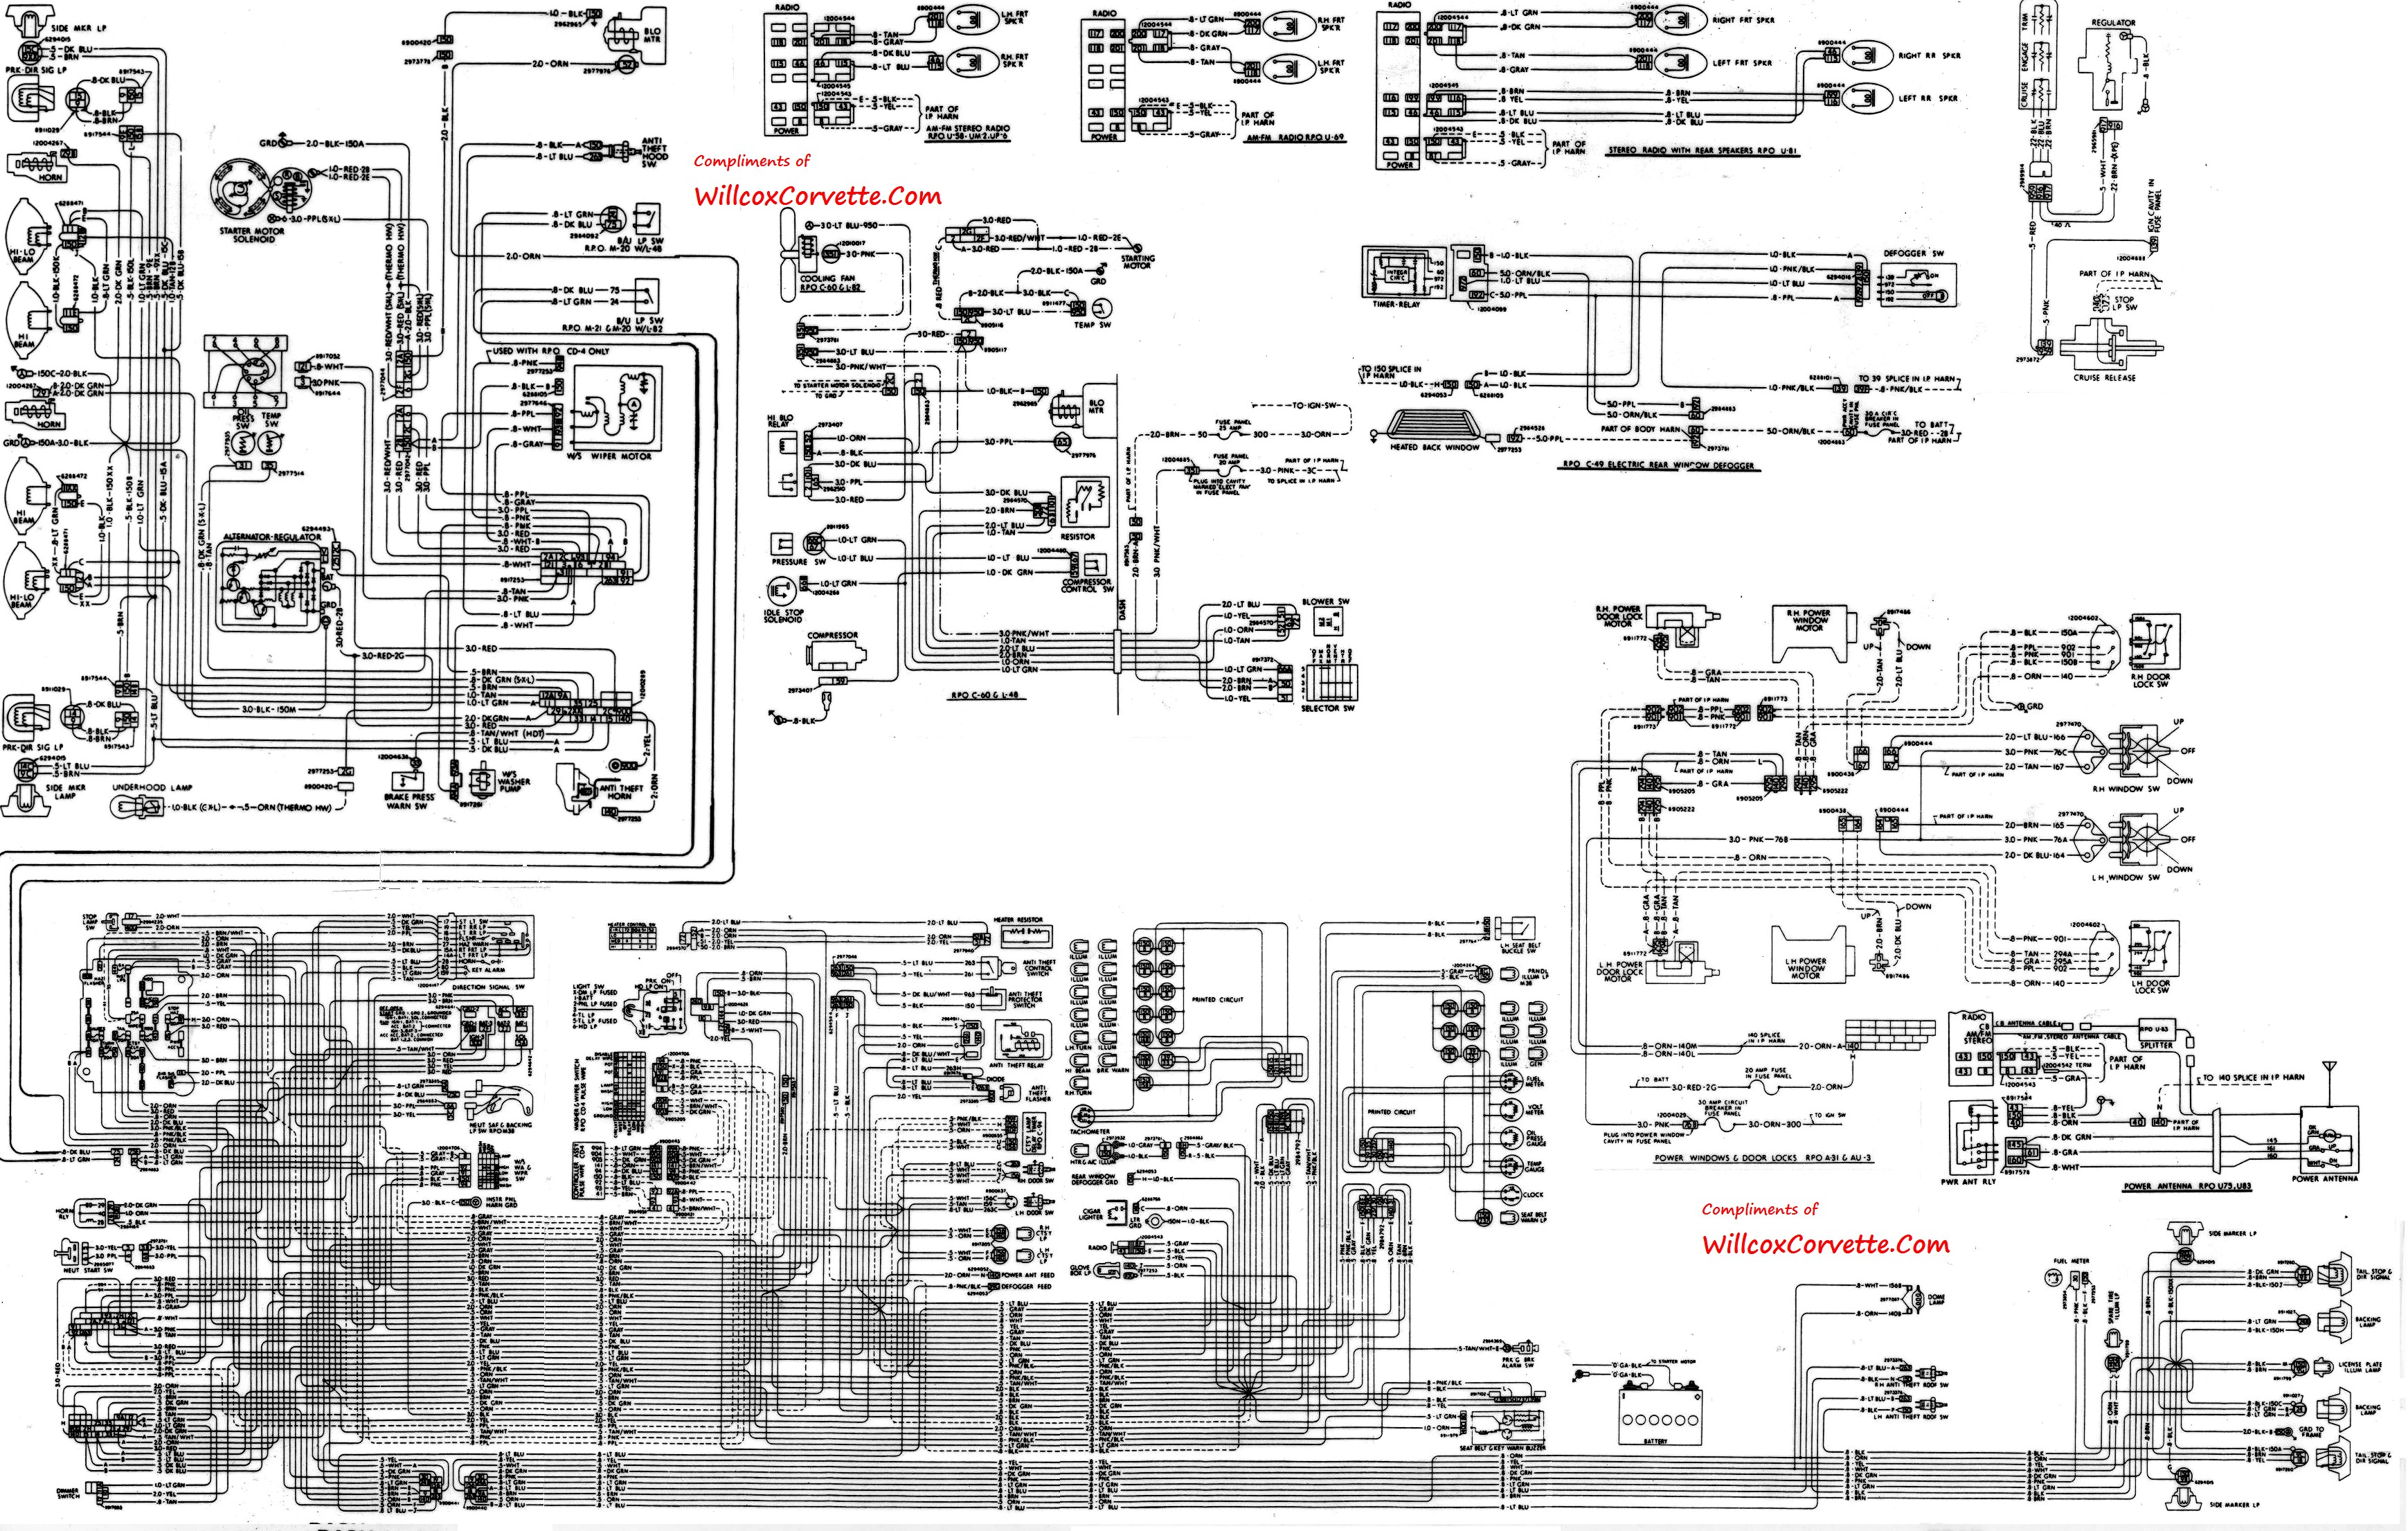 Electric House Wiring Diagram Xs650 Xs B C Wiring Diagram thexscafe Wiring Diagram Ponents Of Electric House Wiring Diagram